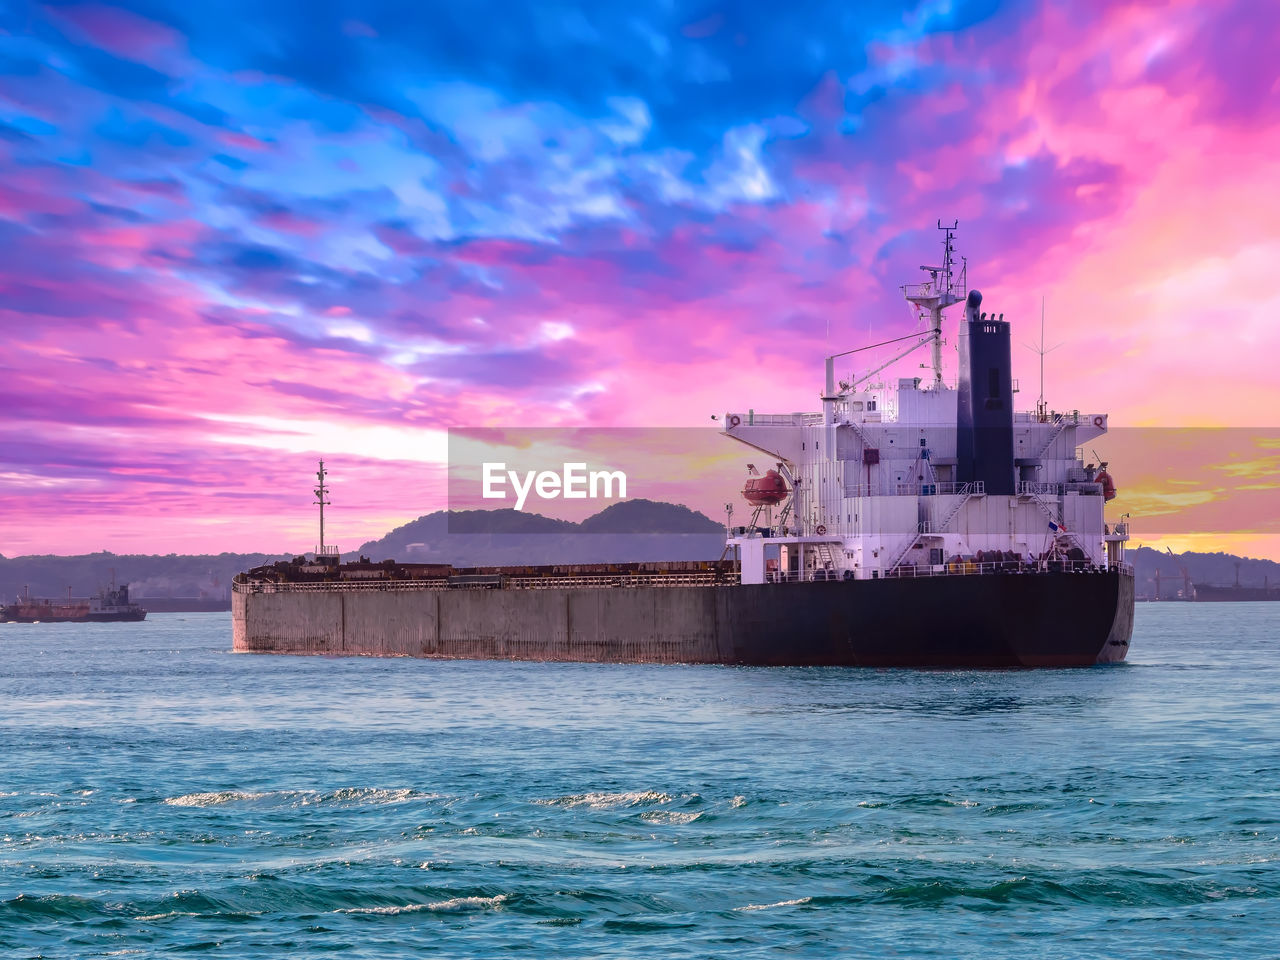 sea, water, sunset, sky, nautical vessel, cloud - sky, waterfront, ship, industry, transportation, freight transportation, mode of transportation, nature, beauty in nature, business, shipping, no people, scenics - nature, outdoors